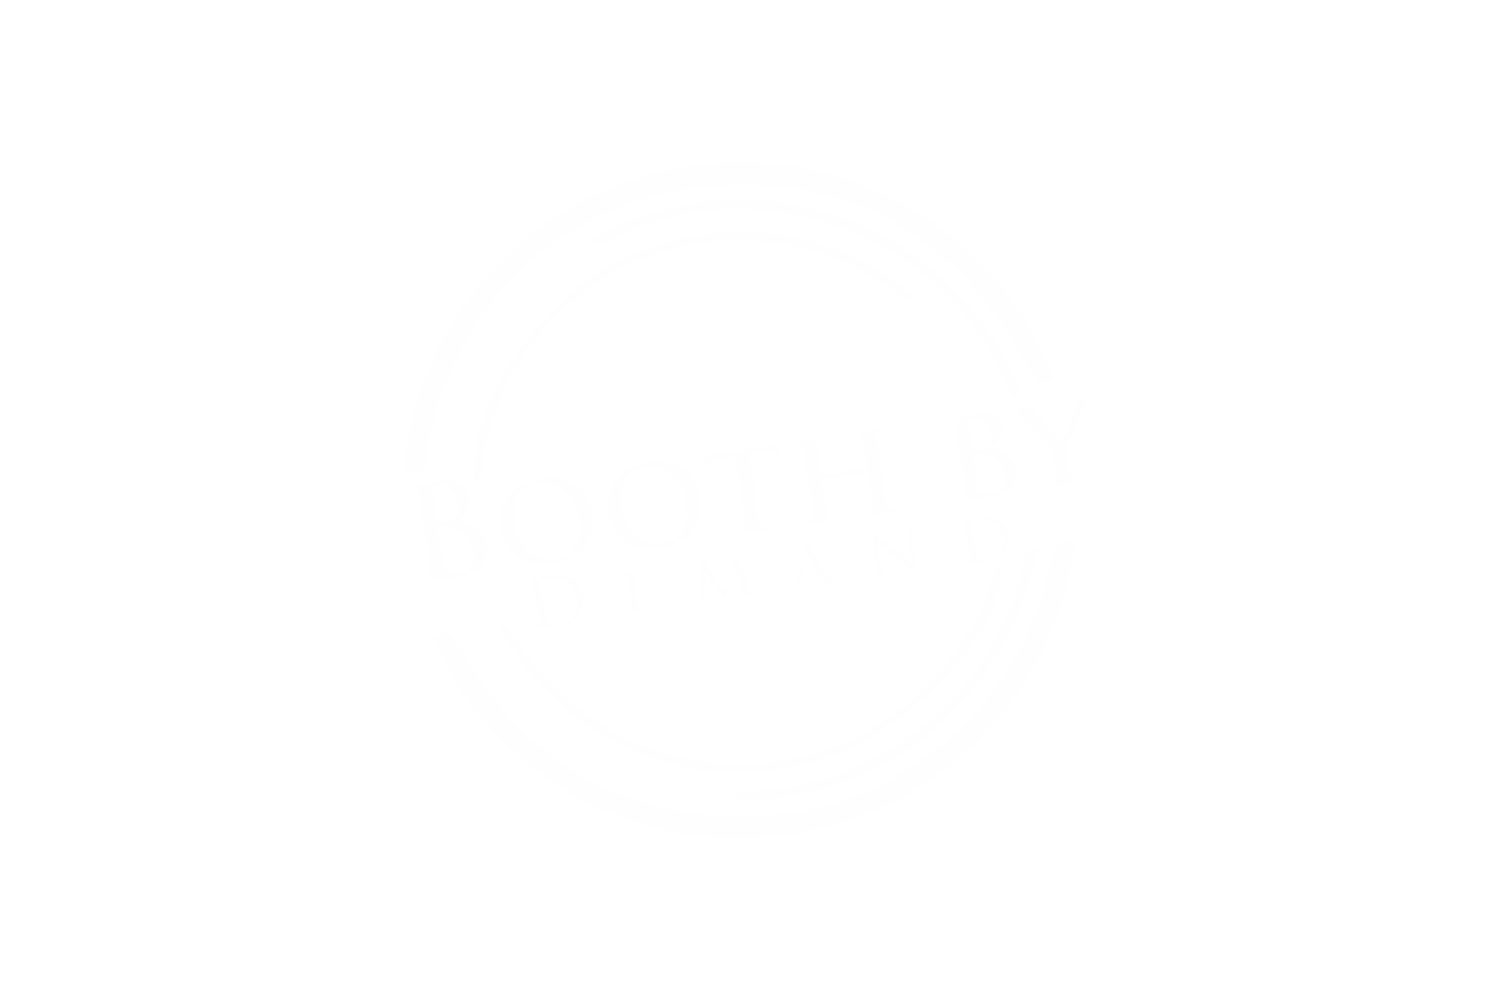 Booth by Demand